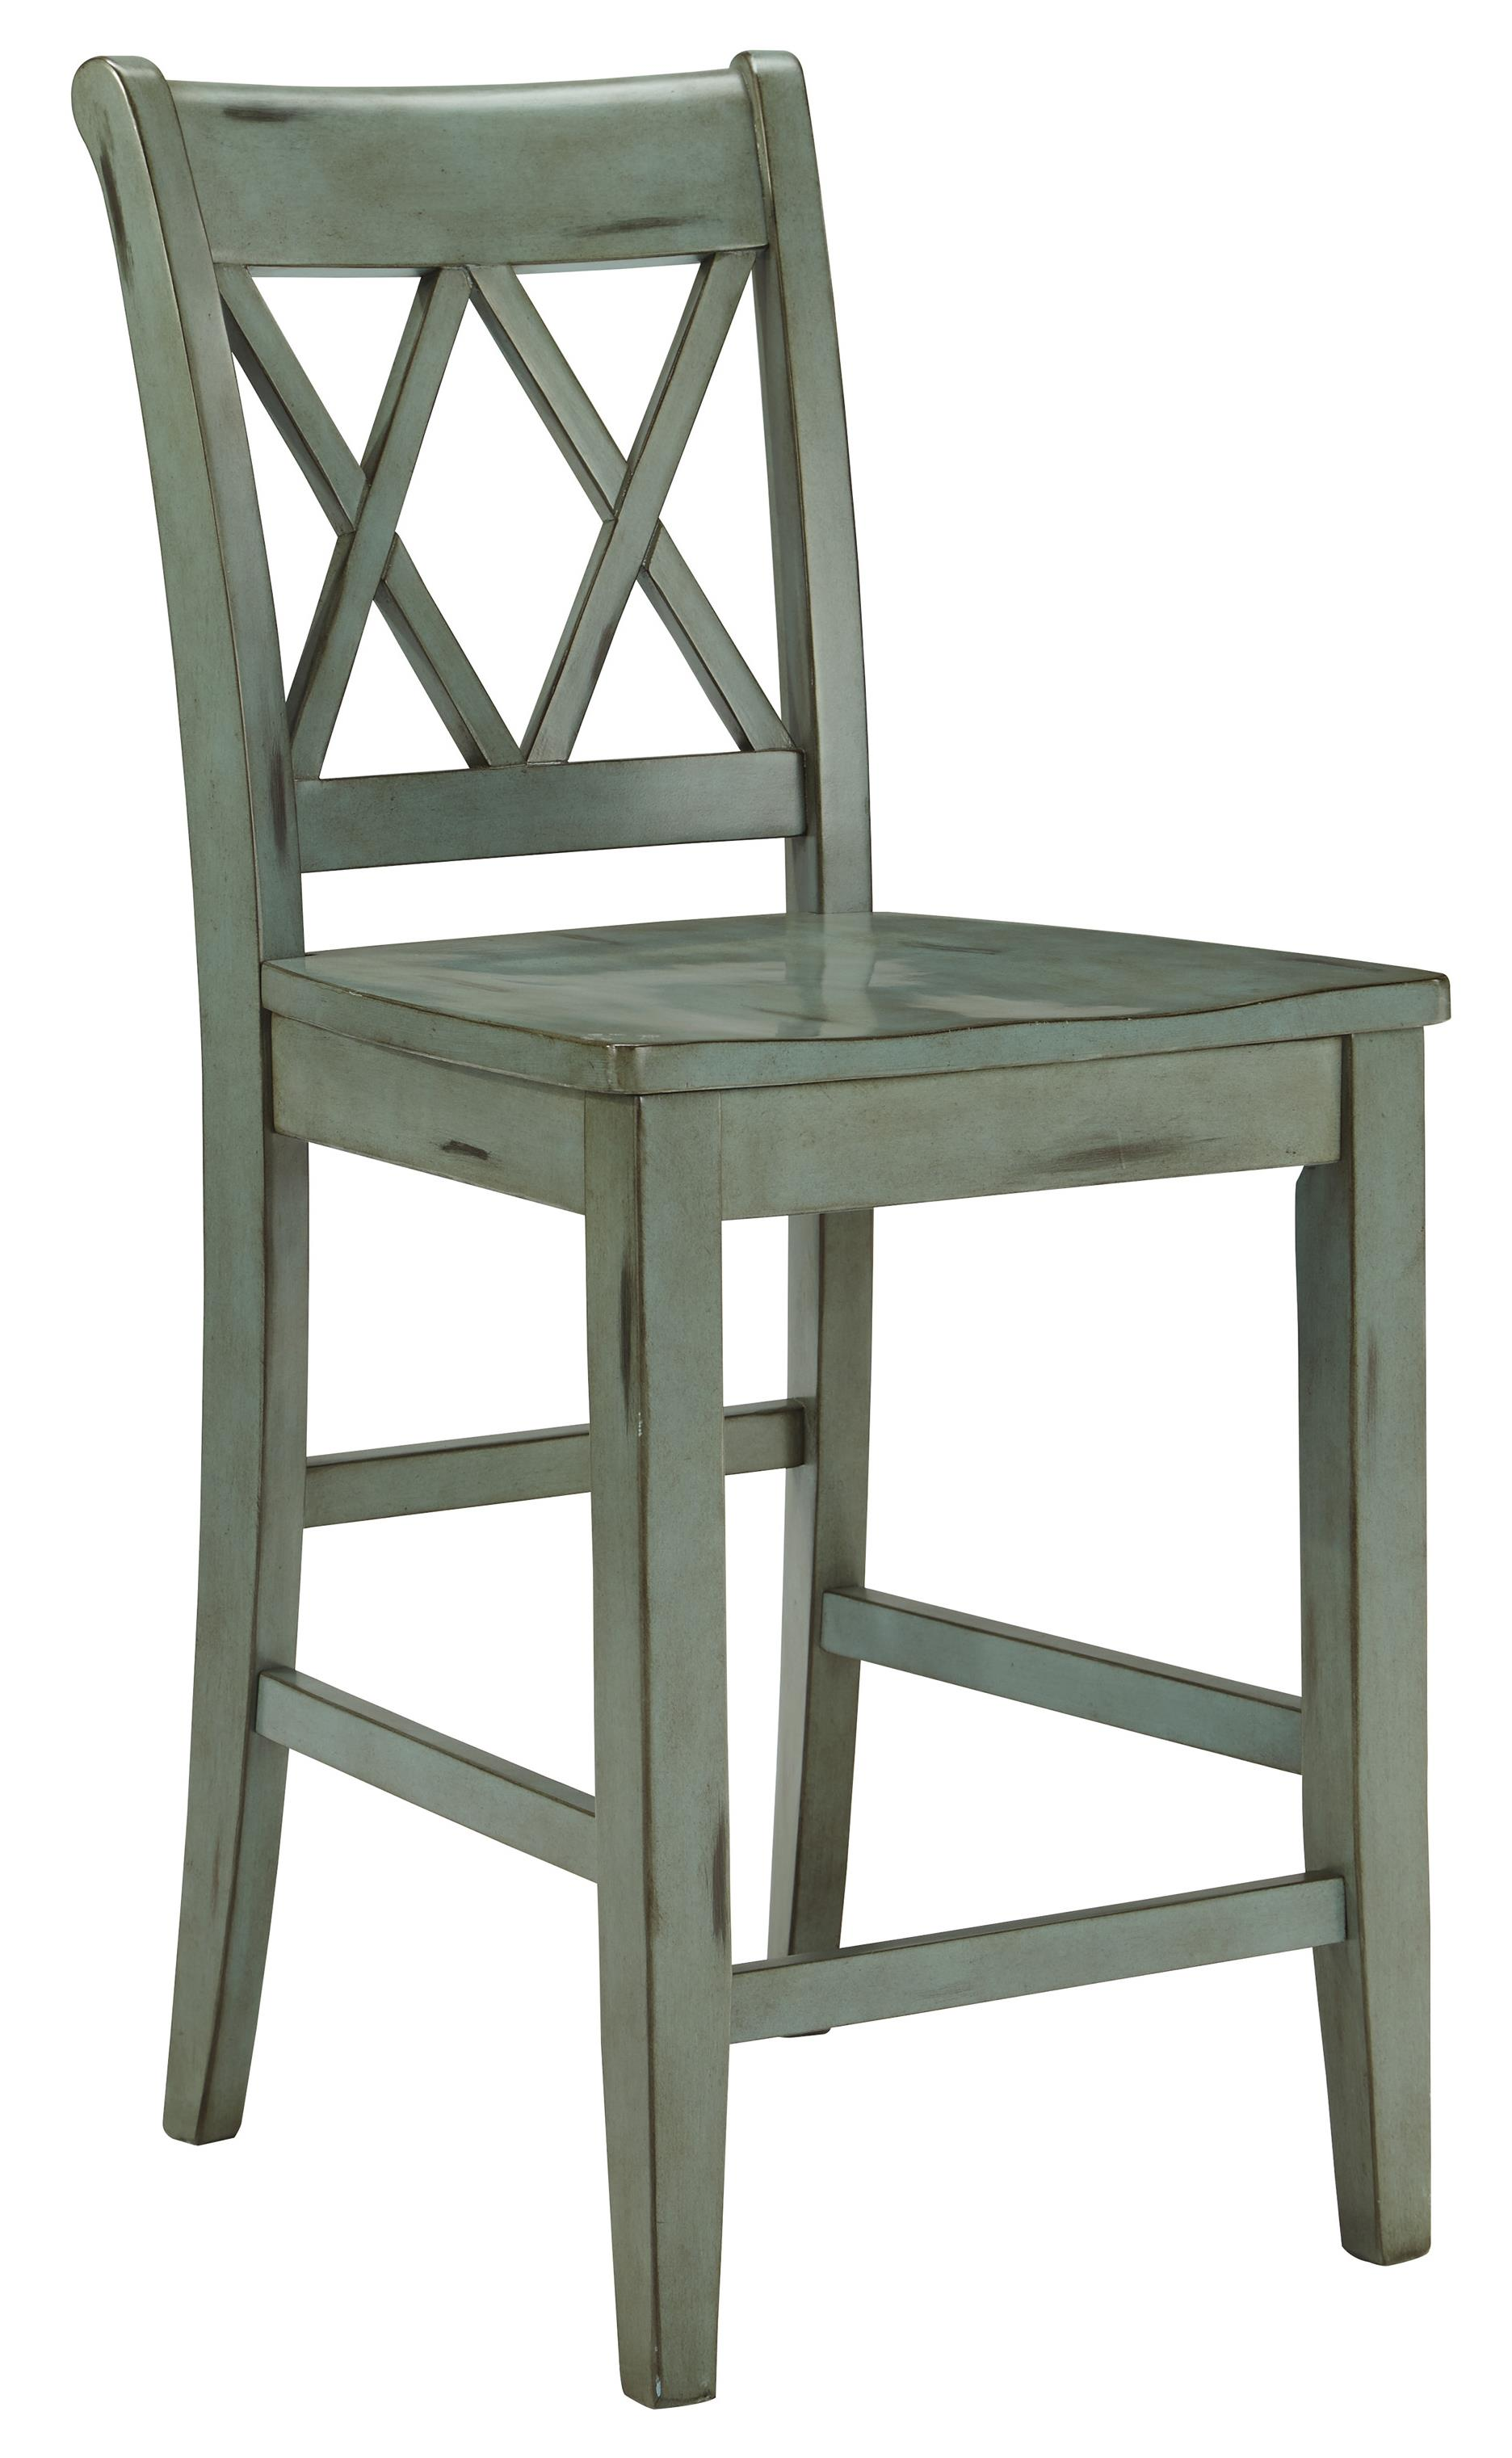 Signature design by ashley mestler barstool item number d540 124